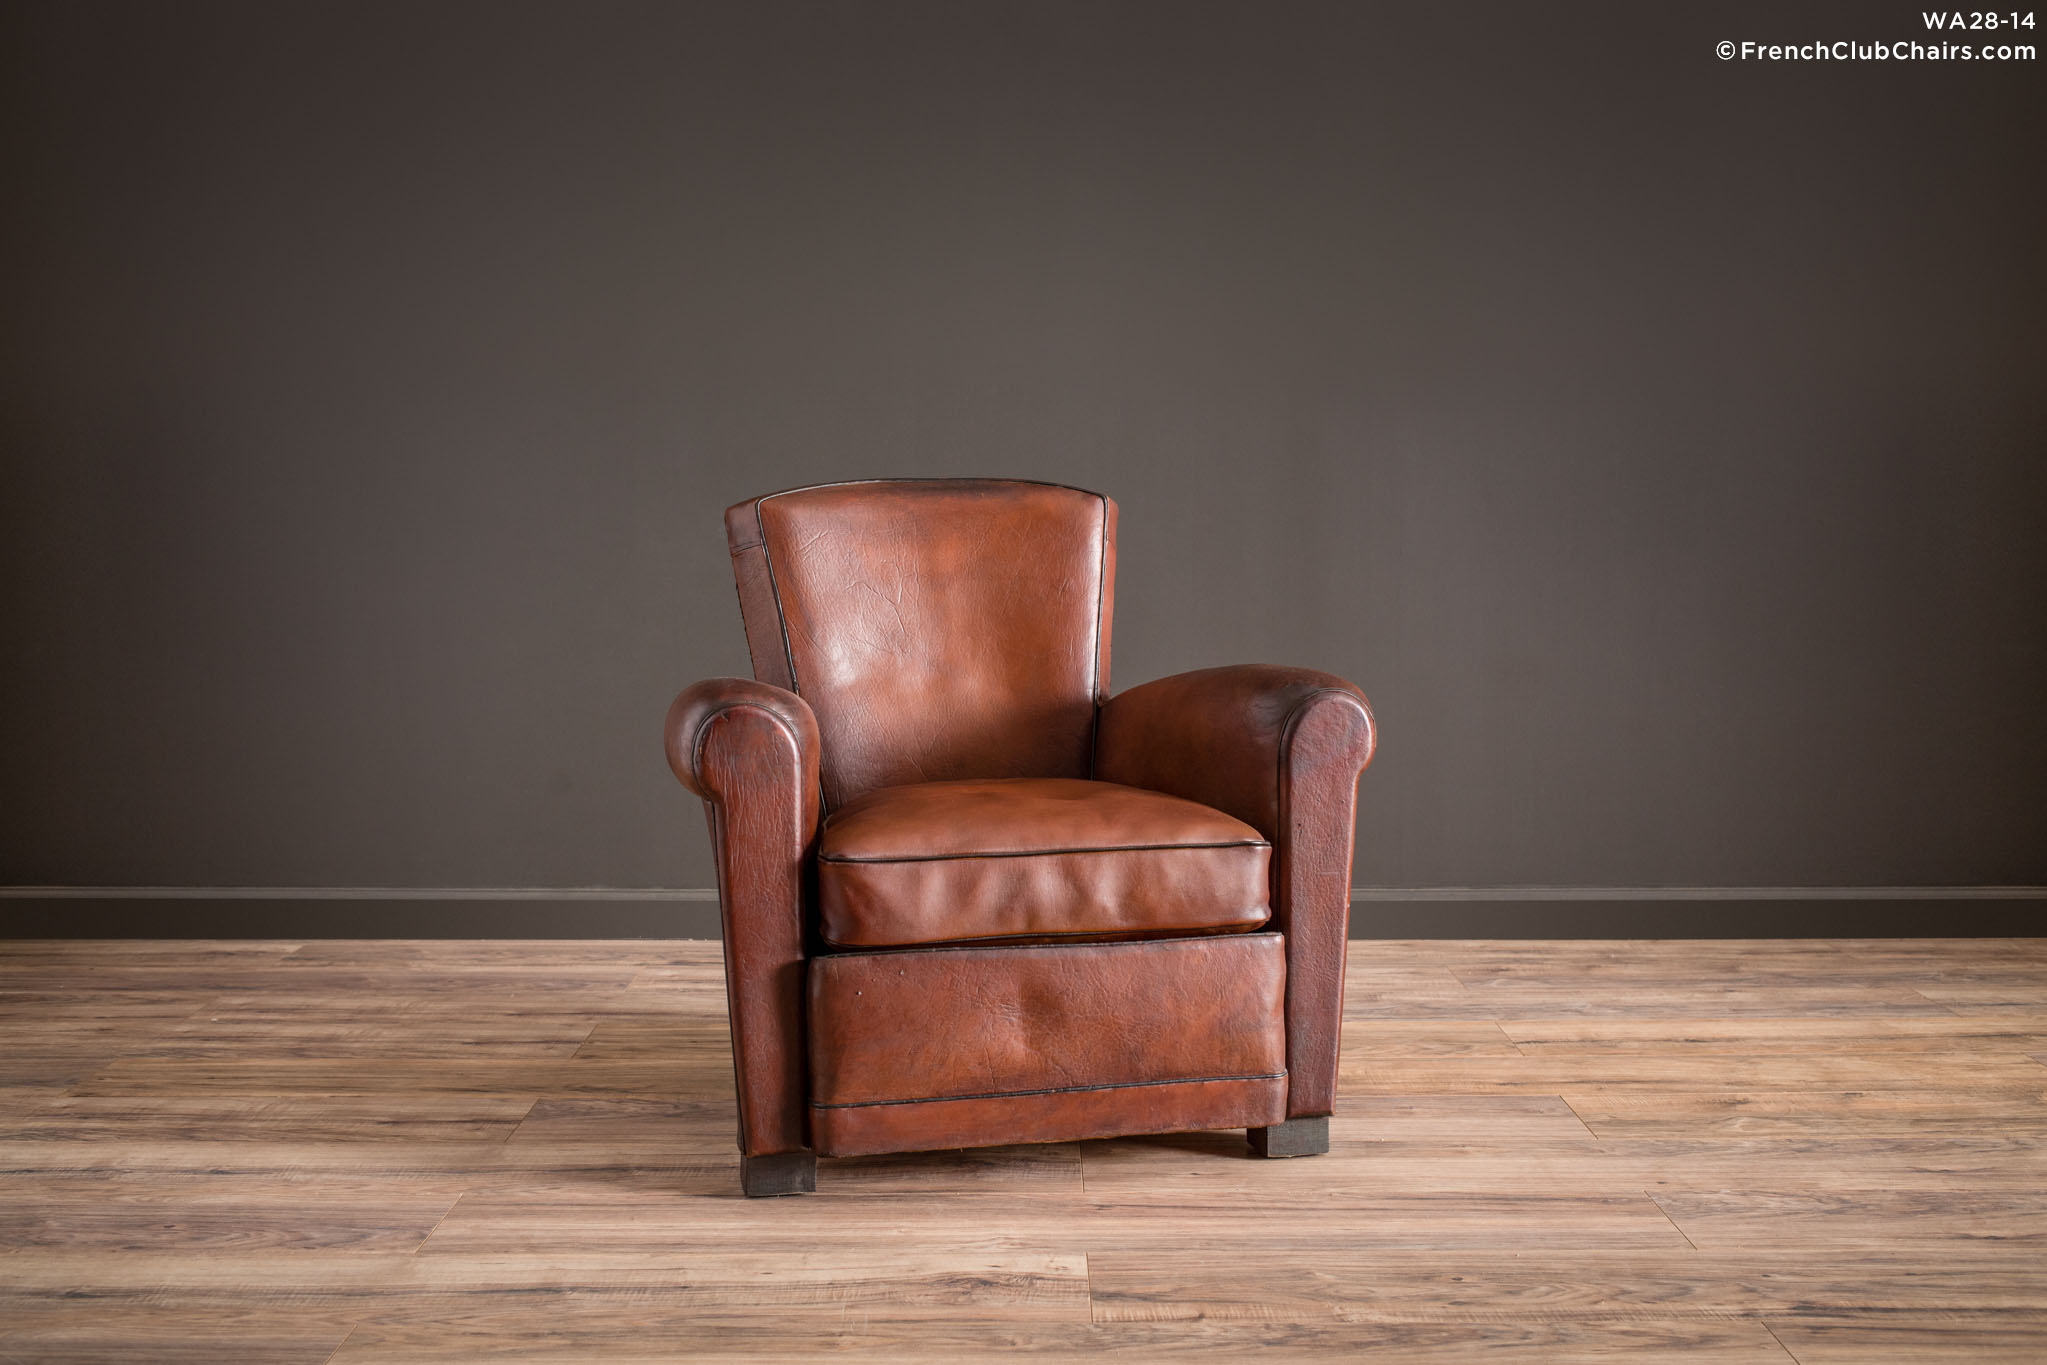 WA_28-14_Landon_Corbeille_Solo_R_1TQ1-williams-antiks-leather-french-club-chair-wa_fcccom